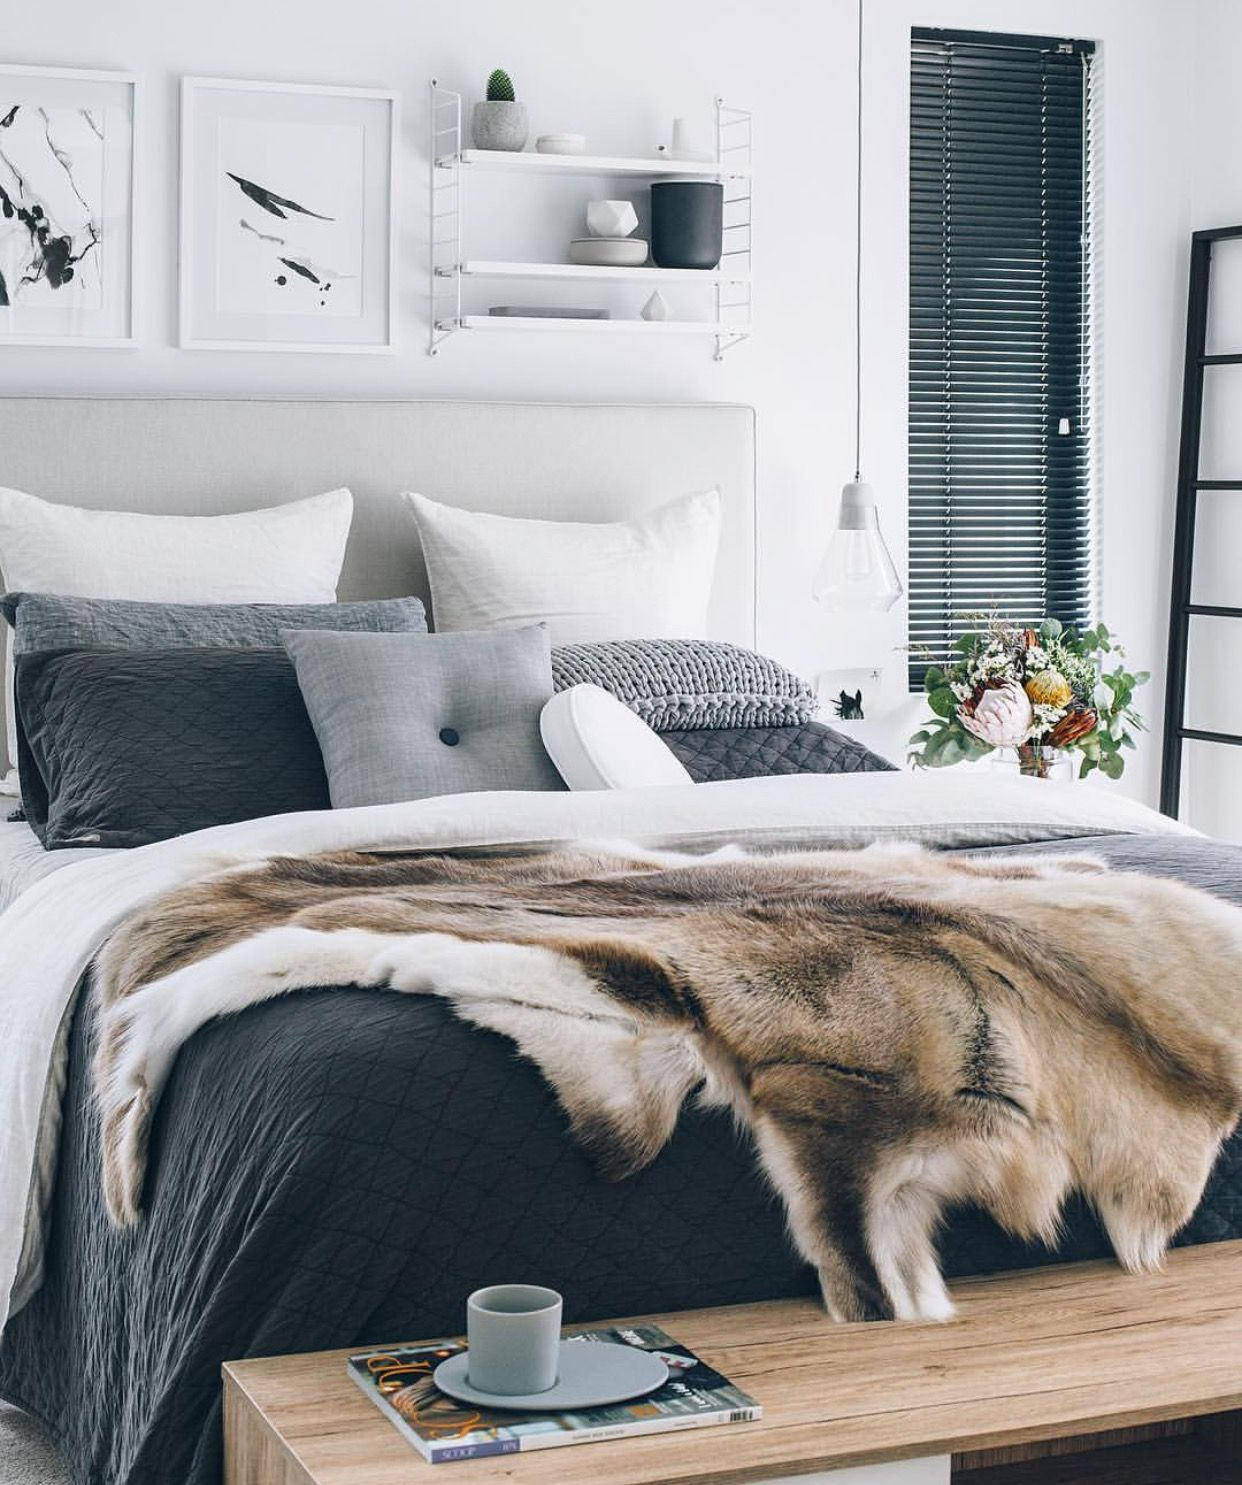 Stunning Charcoal Grey And White Toned Master Bedroom Photo By For The